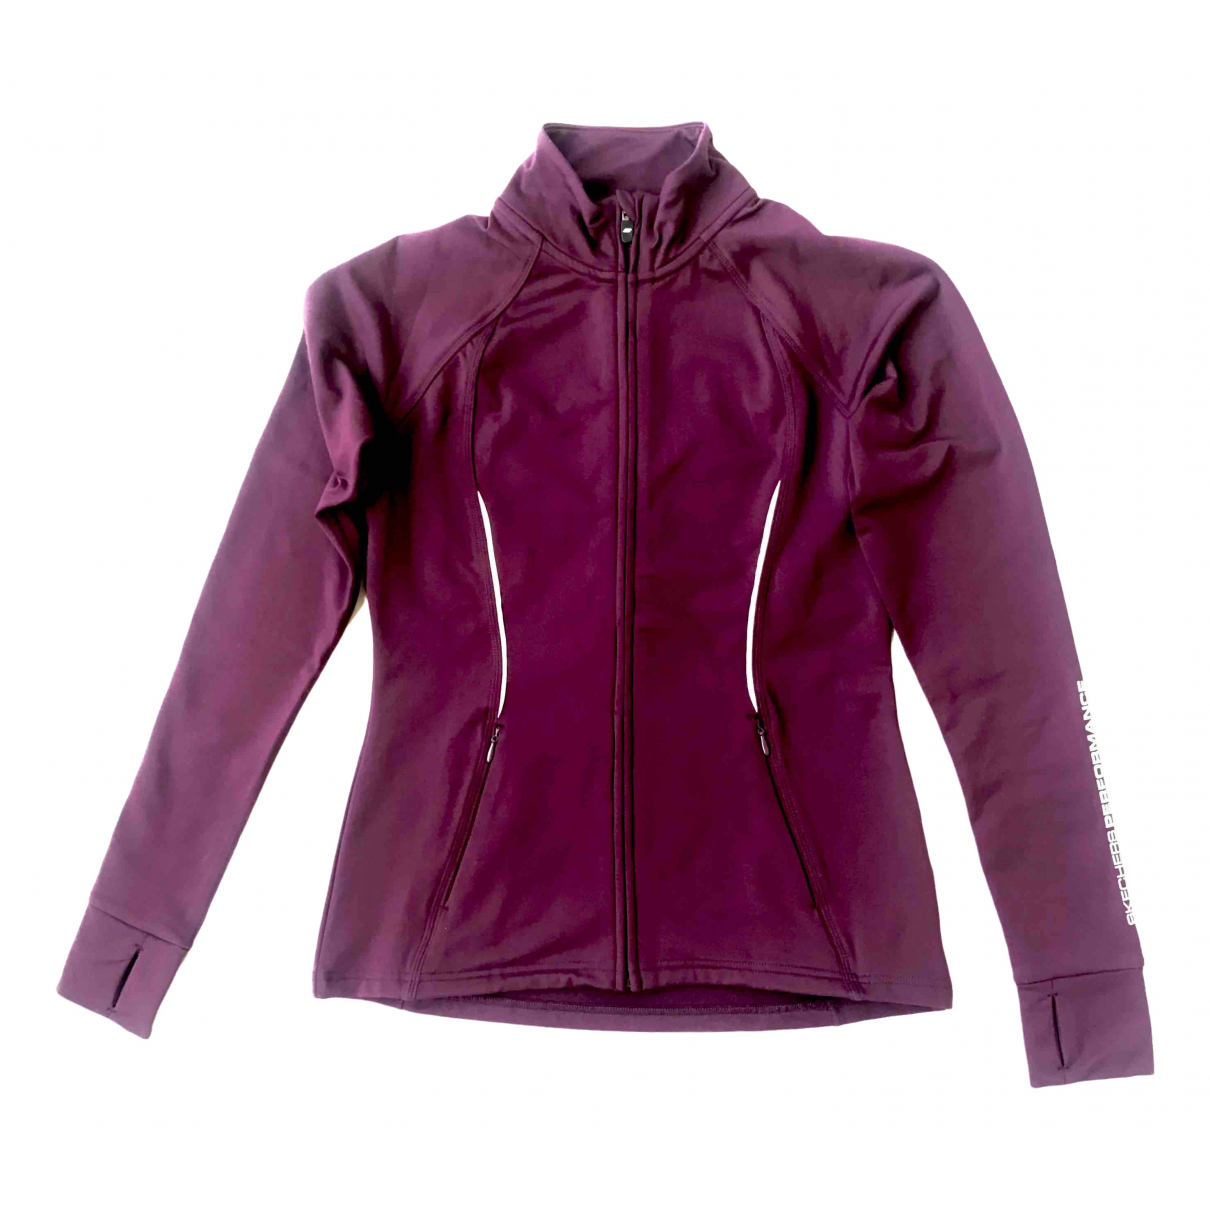 Skechers \N Jacke in  Bordeauxrot Polyester